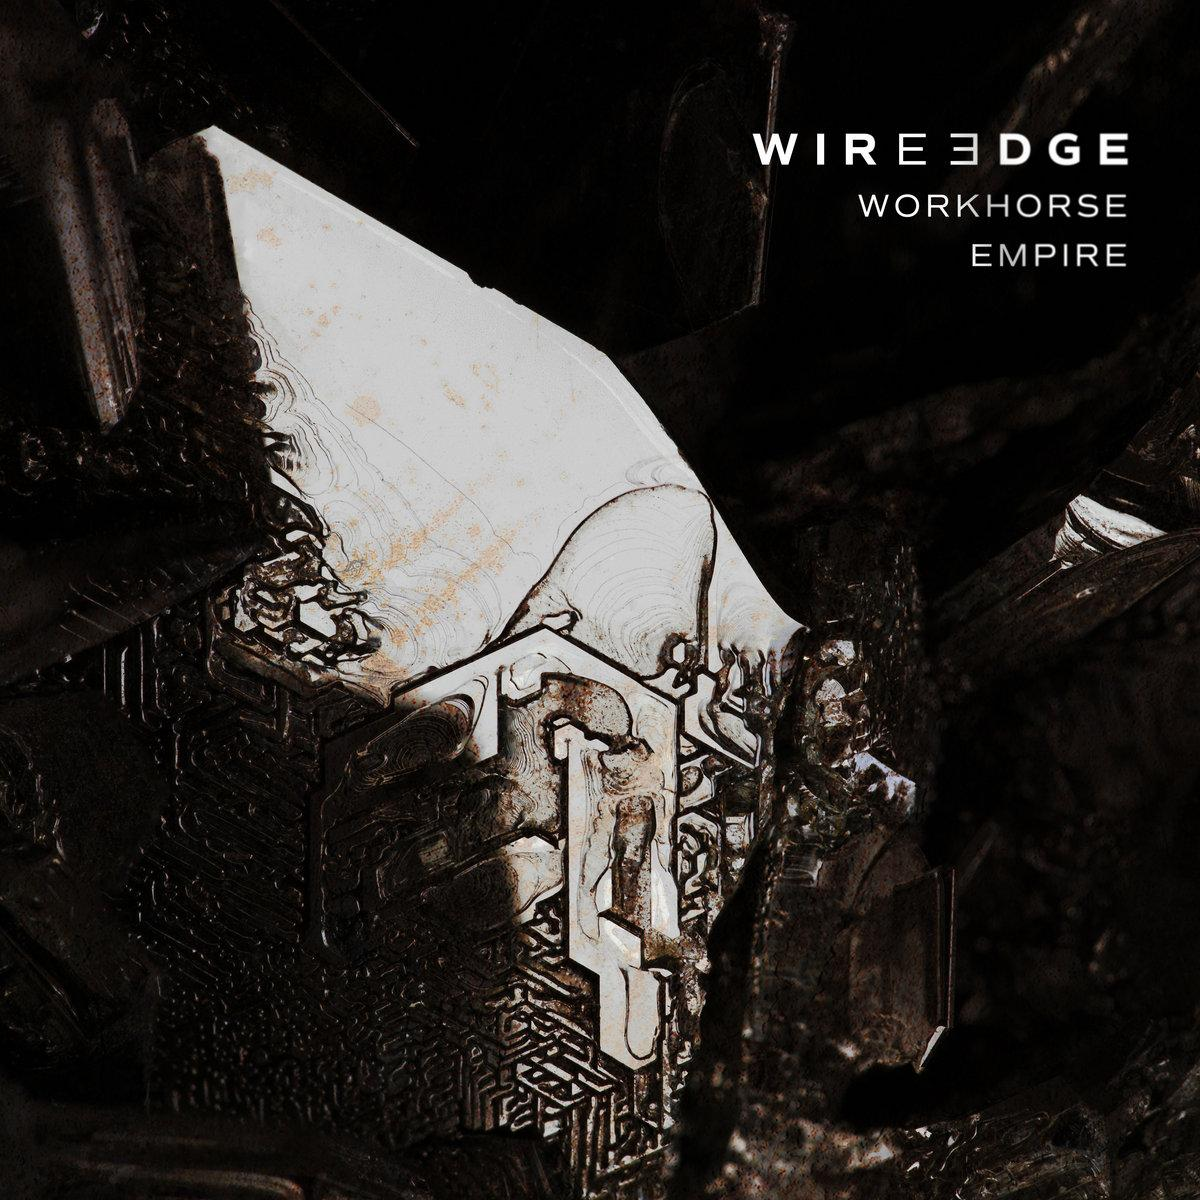 CHRONIQUE D'ALBUM : WIRE EDGE (Cold Wave / Prog' Metal) Workhorse Empire (2020)